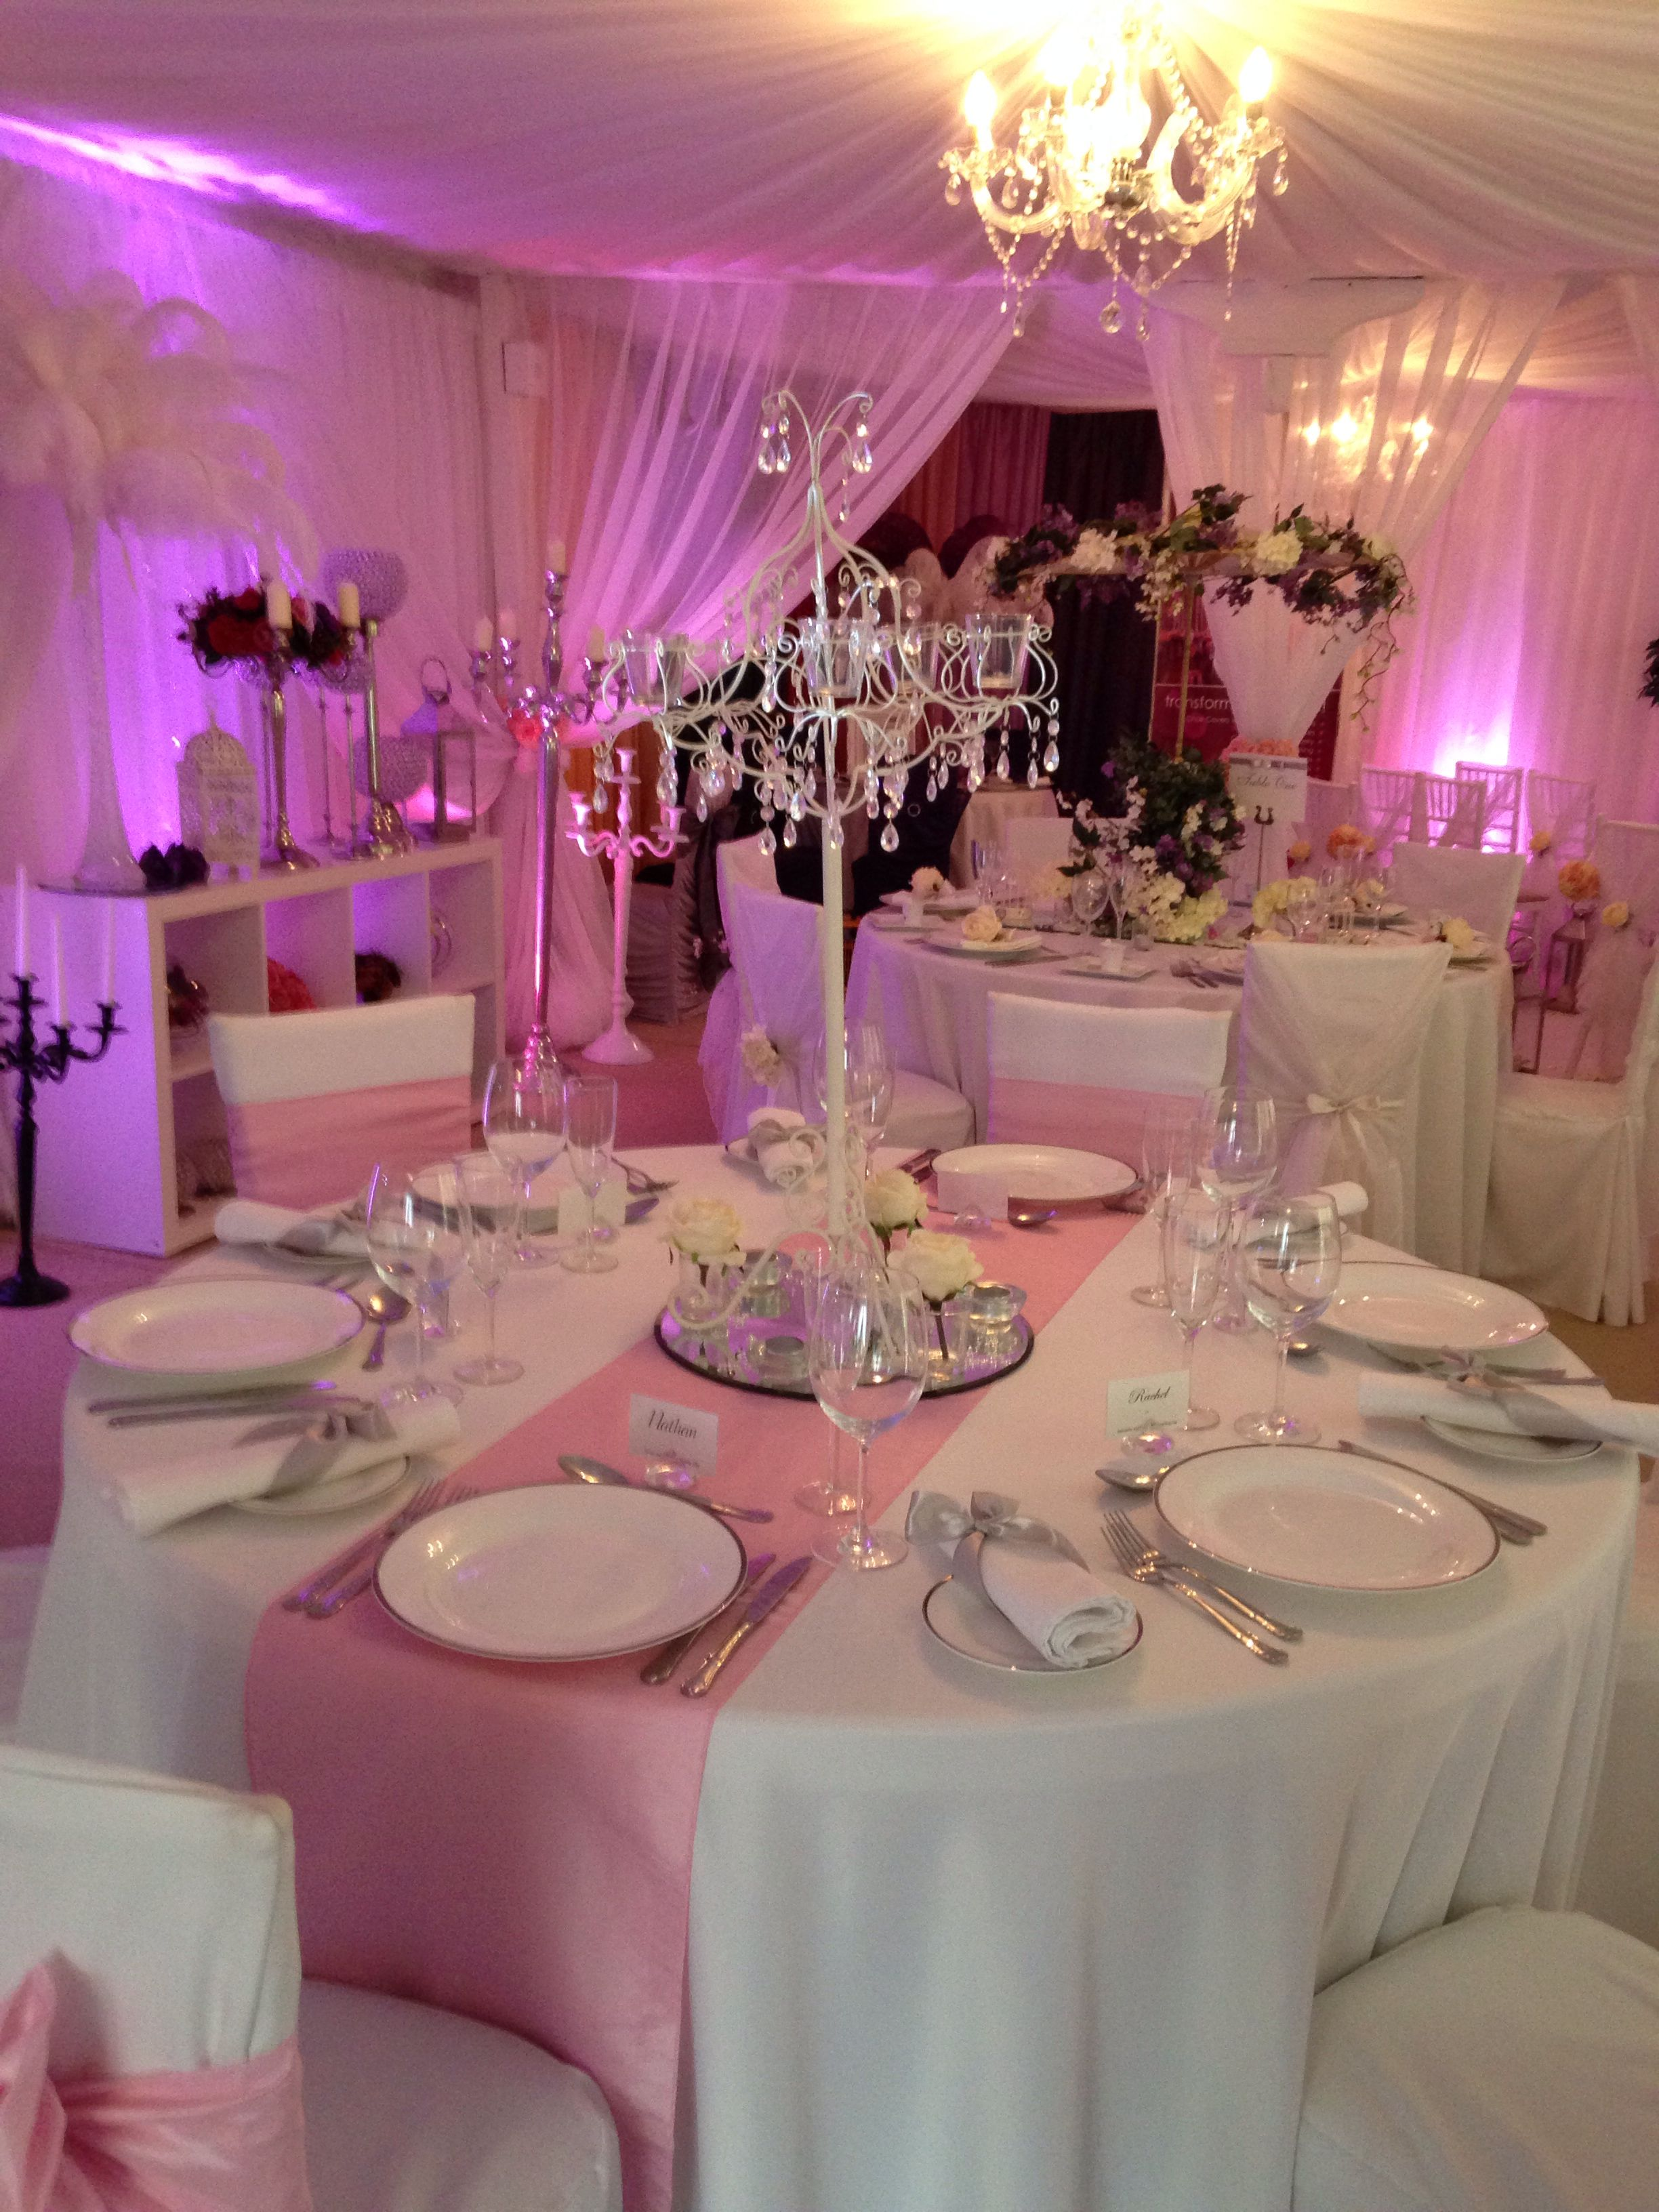 Bows Hire Drapery And Centerpiece Sopretty Baby Shower